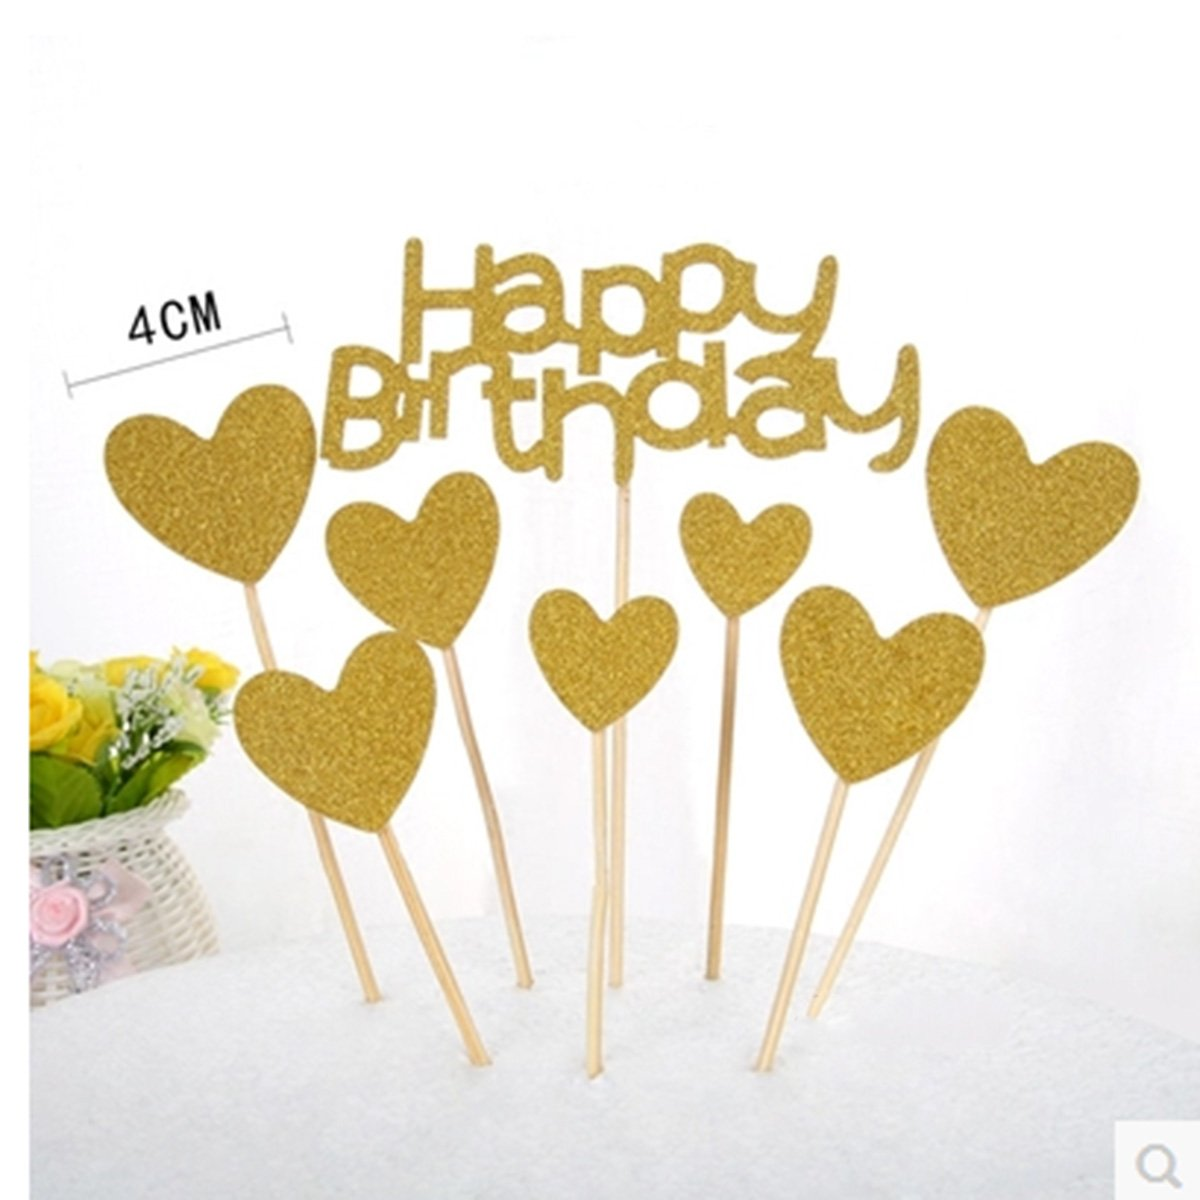 Gold Glitter Heart Large Cupcake Toppers DIY Mini Glitter Birthday Cake Decoration Picks Weddings 40PCS CiCy Heart Cupcake Toppers Bridal or Baby Shower Party Suplliers